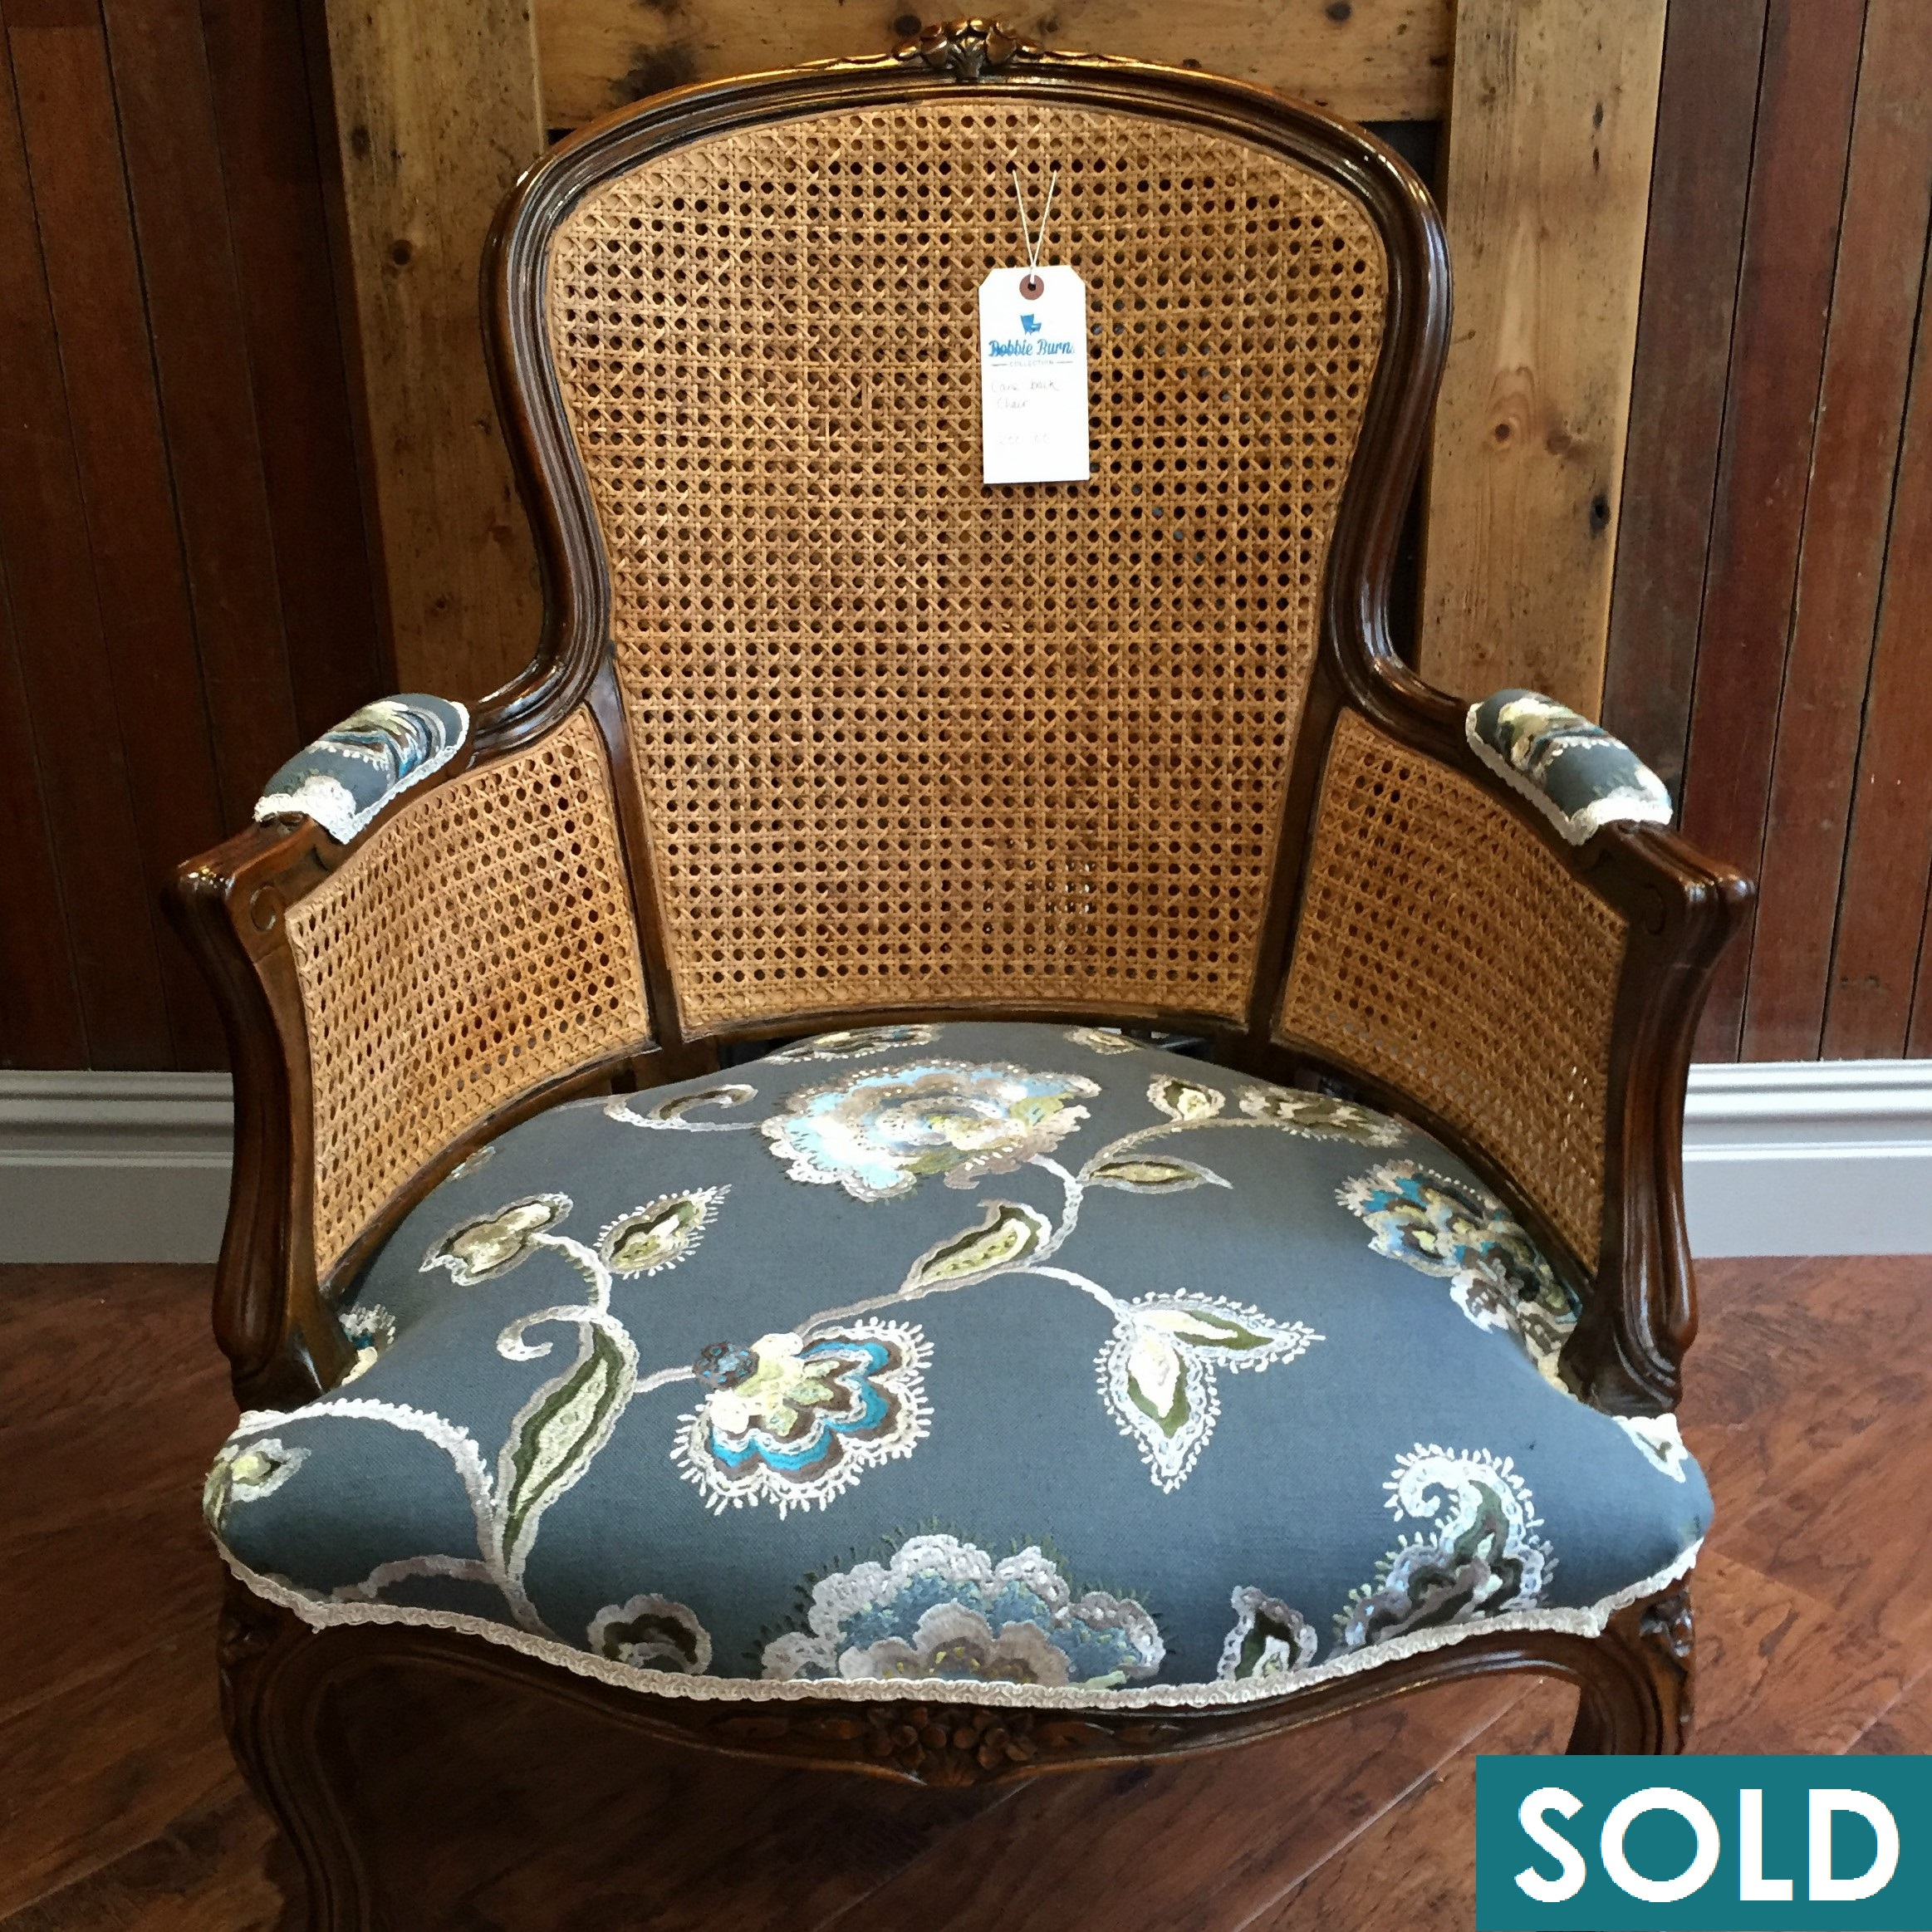 Rattan back square SOLD